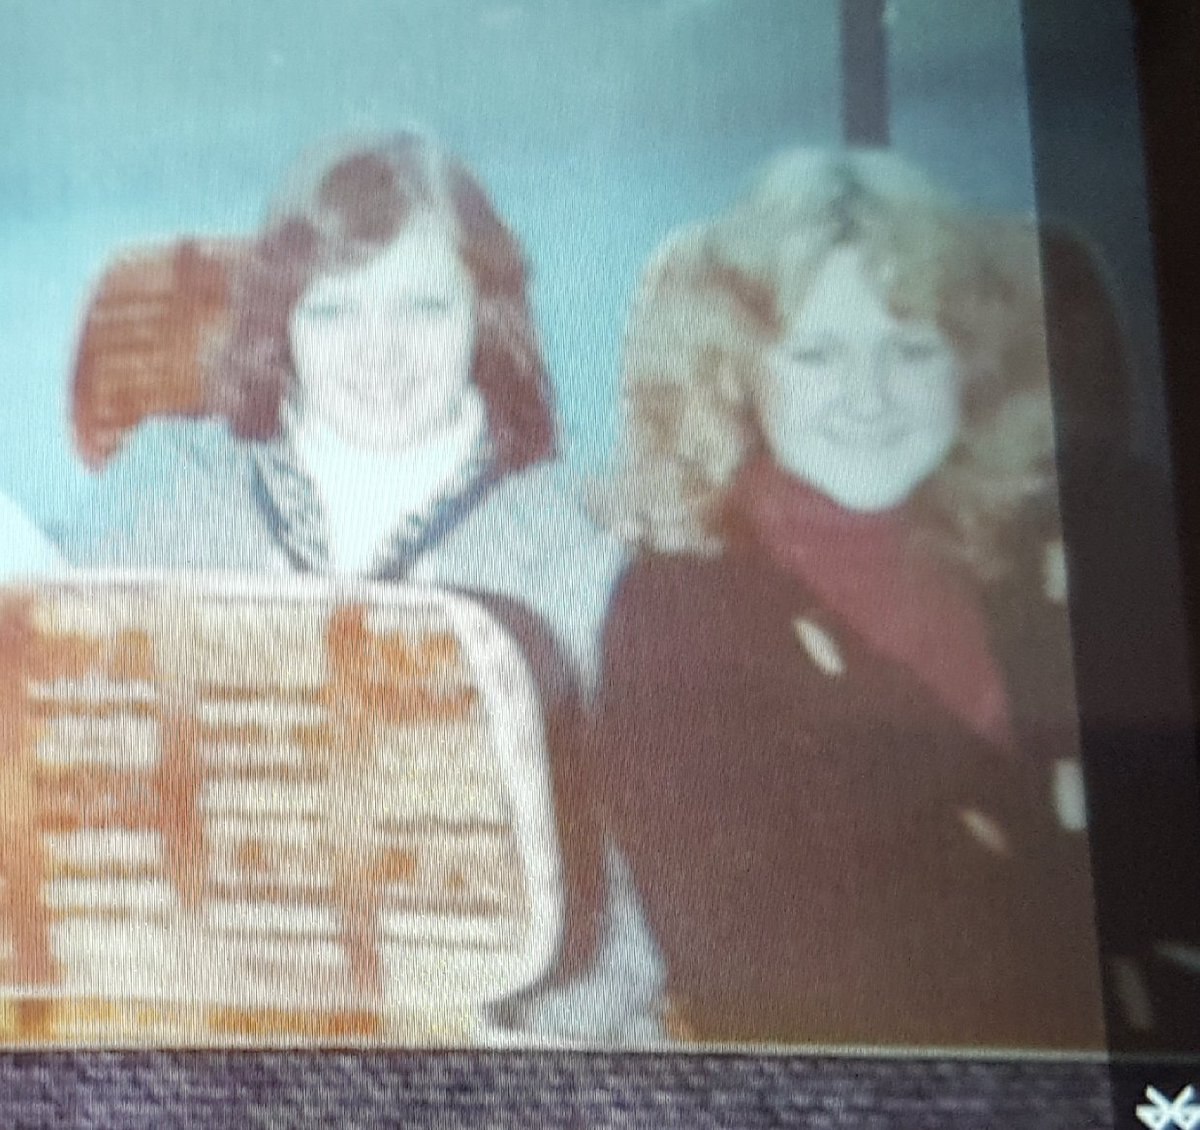 So...Tuesday teaser...guess who is sat next to me at the back of the coach misbehaving in 1976? Now @TeamRBCH #schooldays #exalumi #stilllookexactlythesameafteralltheseyears<br>http://pic.twitter.com/CLwrpXqyc6